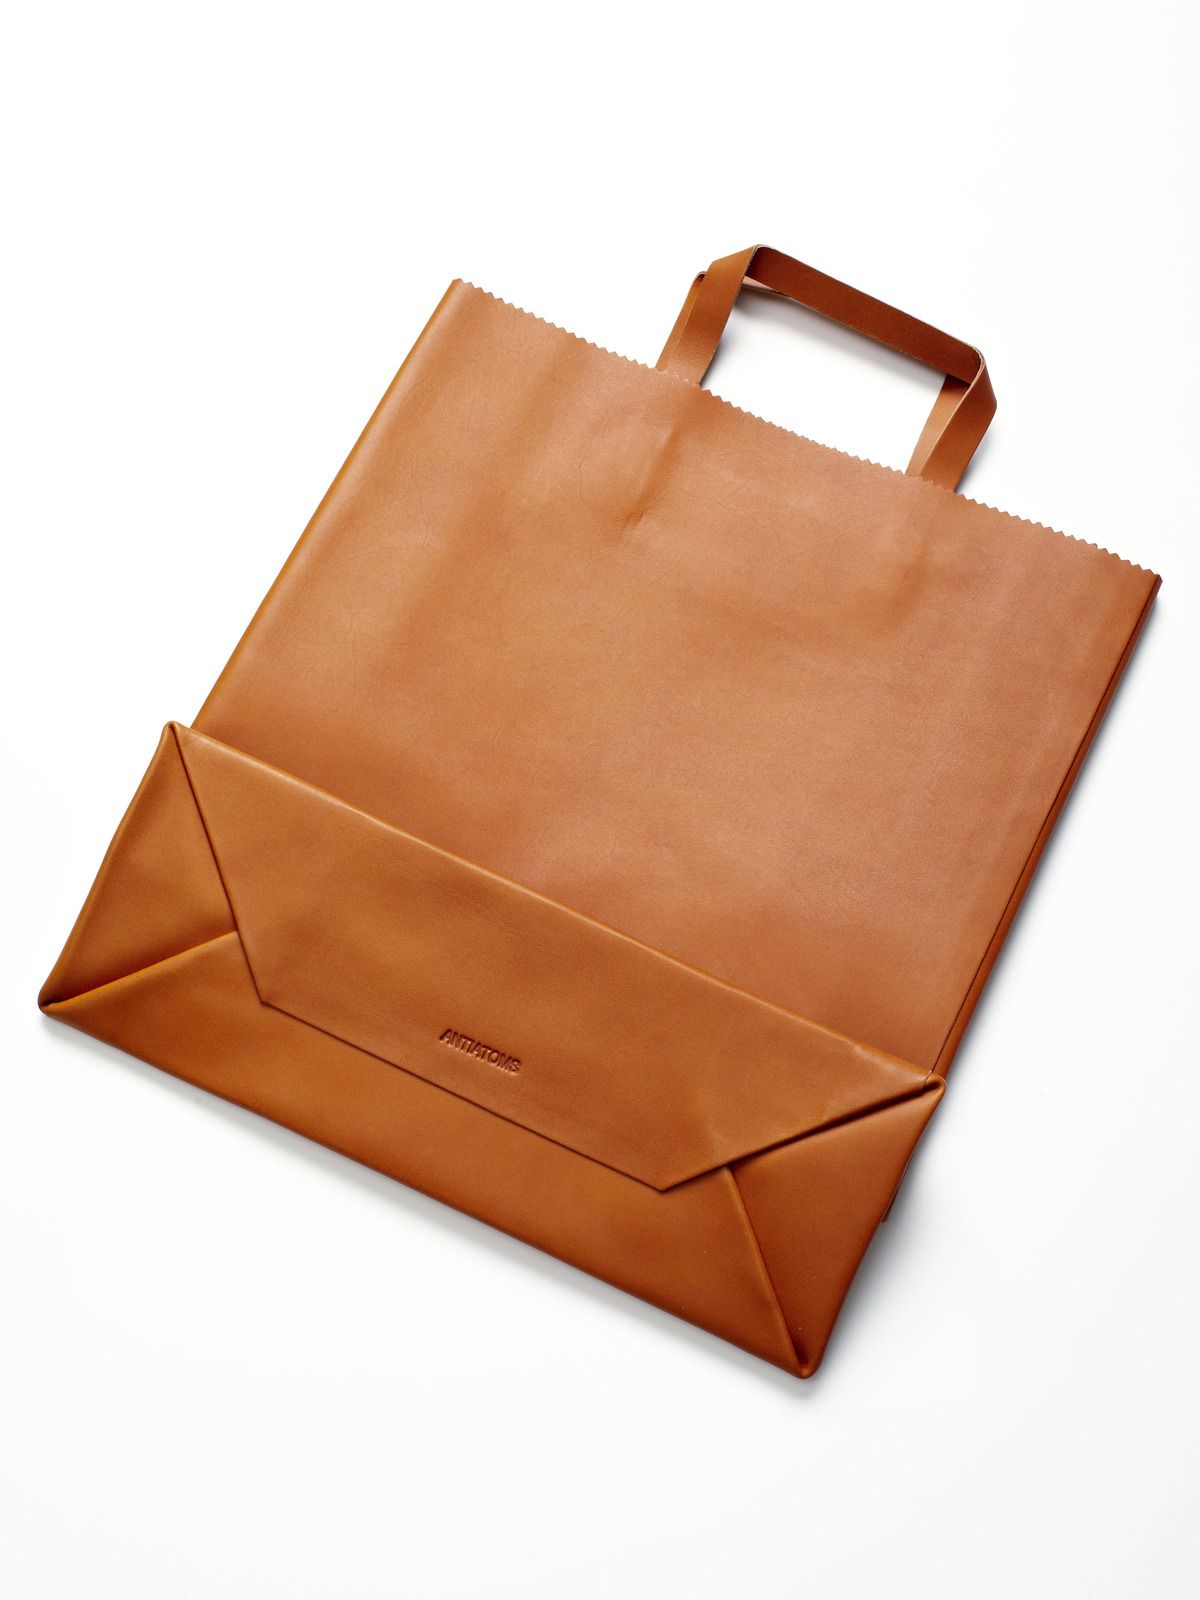 Antiatoms Leather Shopping Bag, made of 100% leather | leather ...